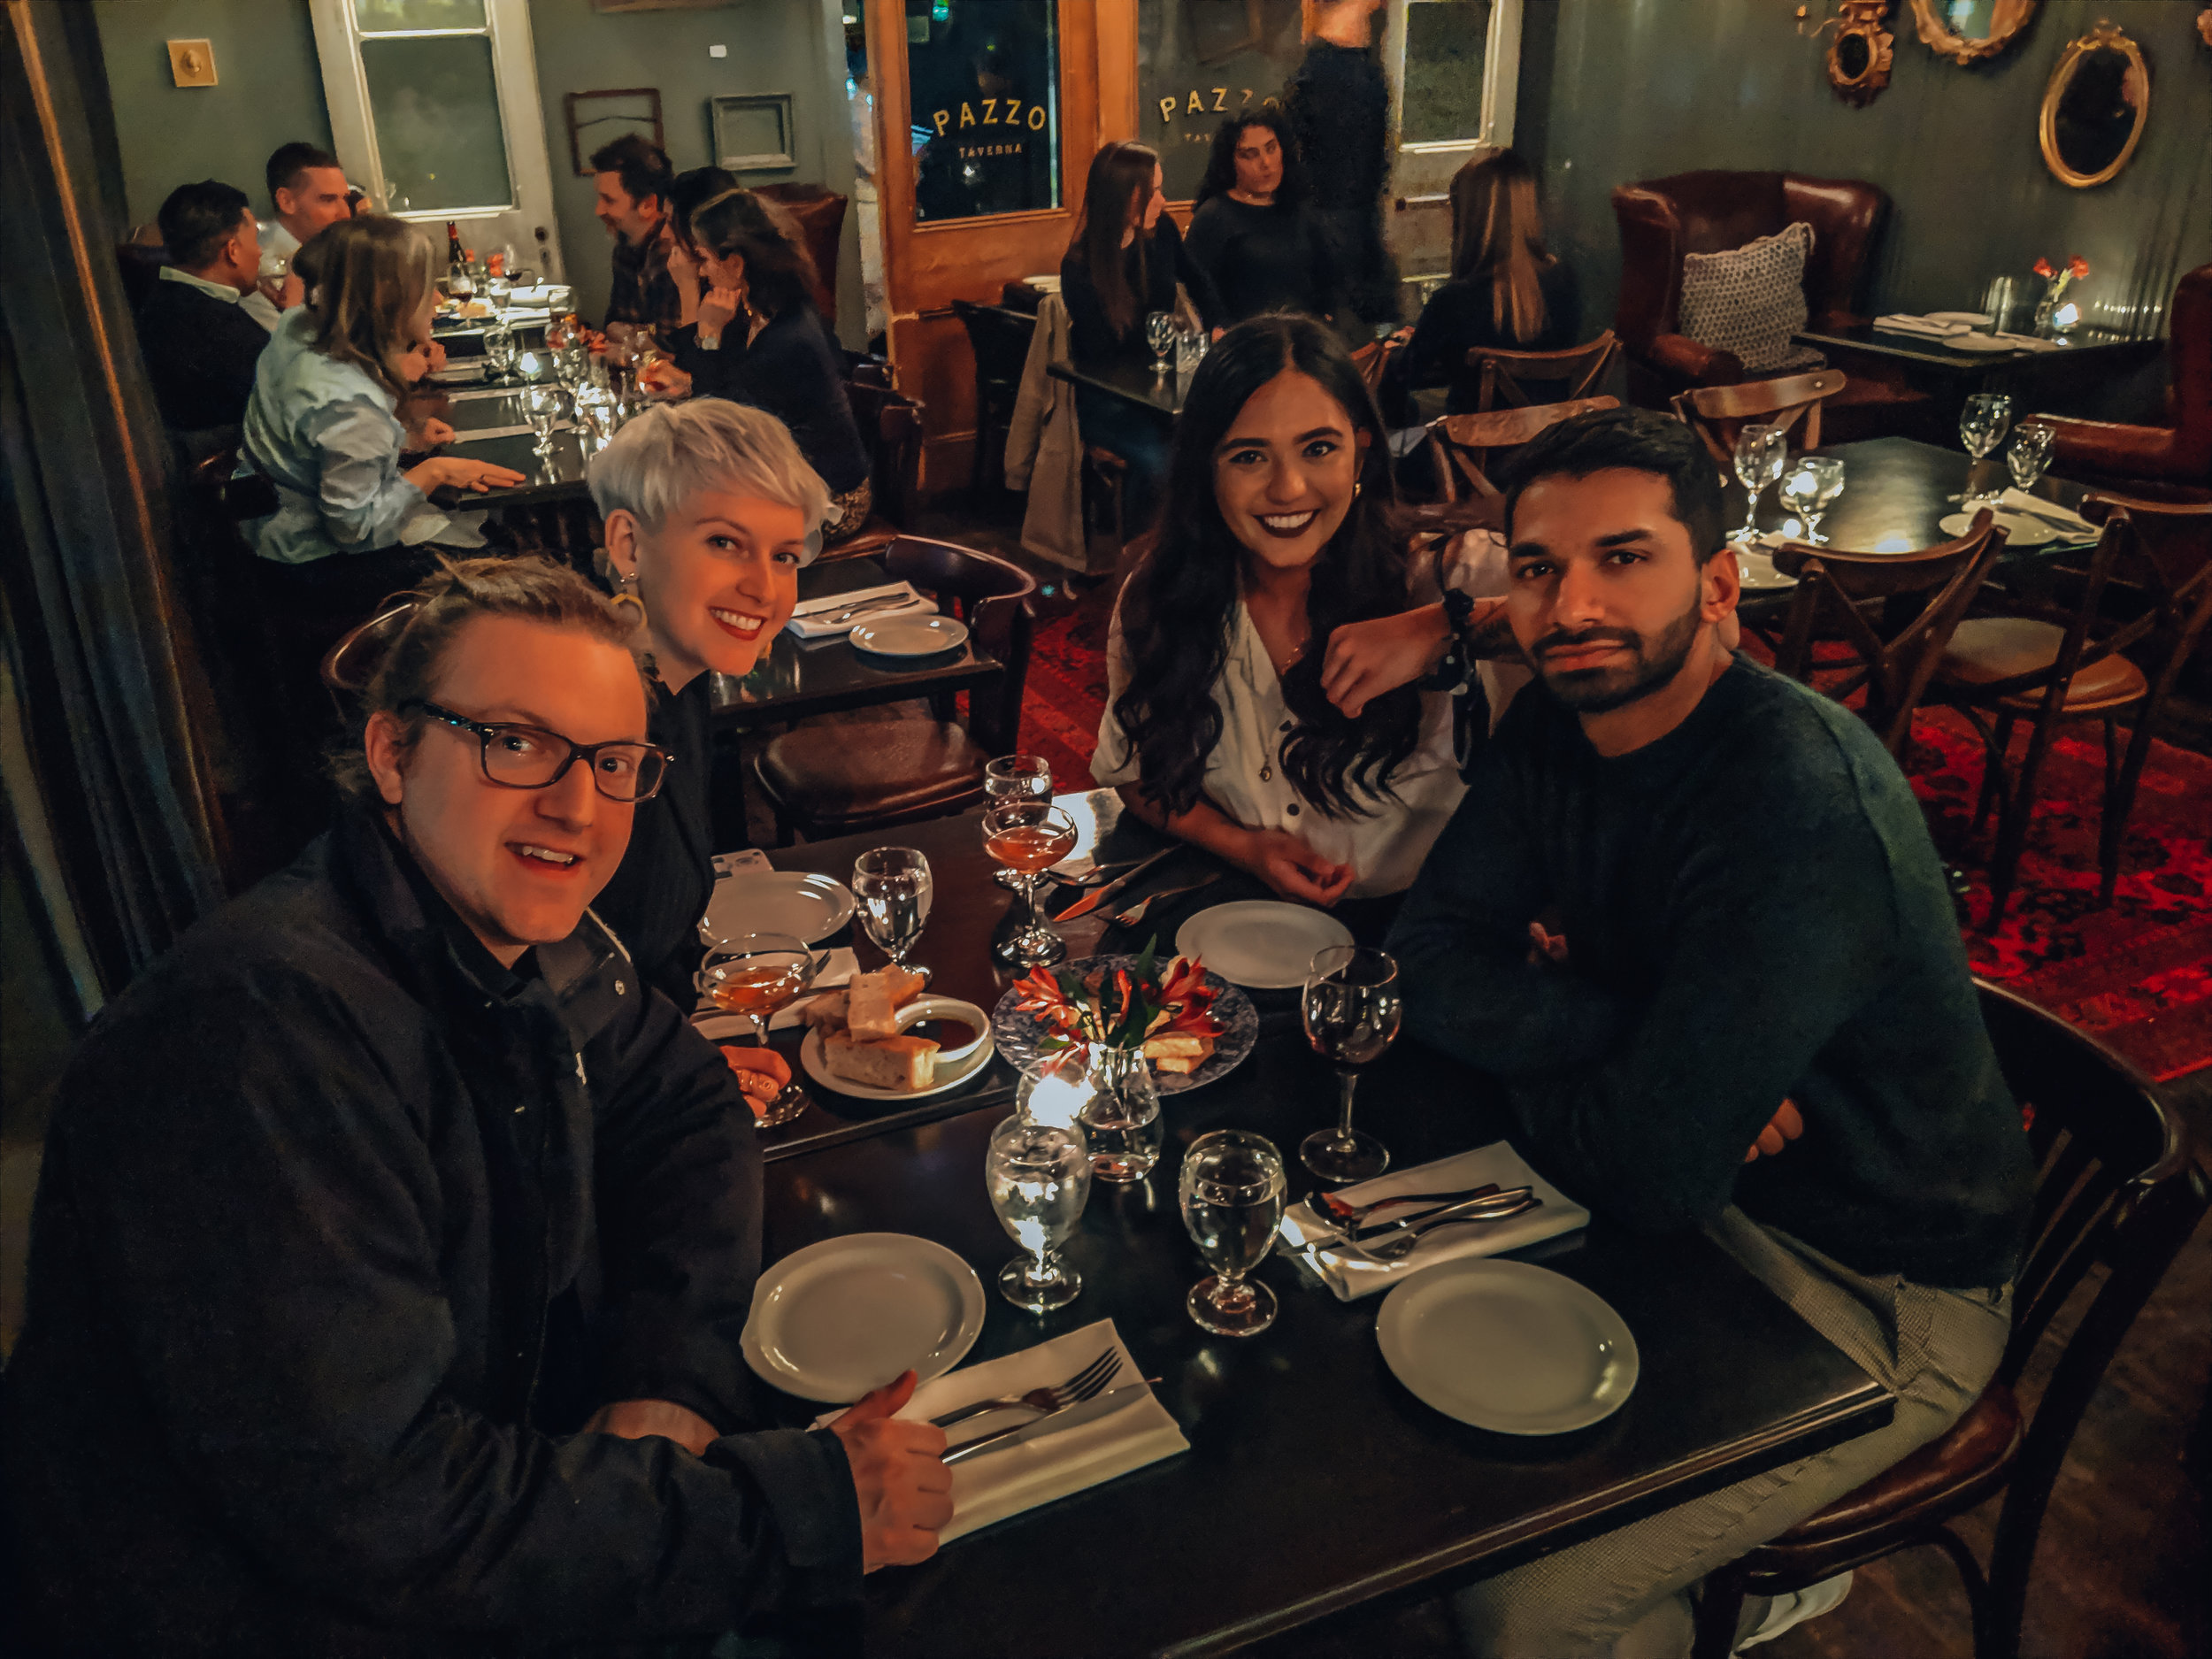 Claire, David, Alistair, and I at Pazzo